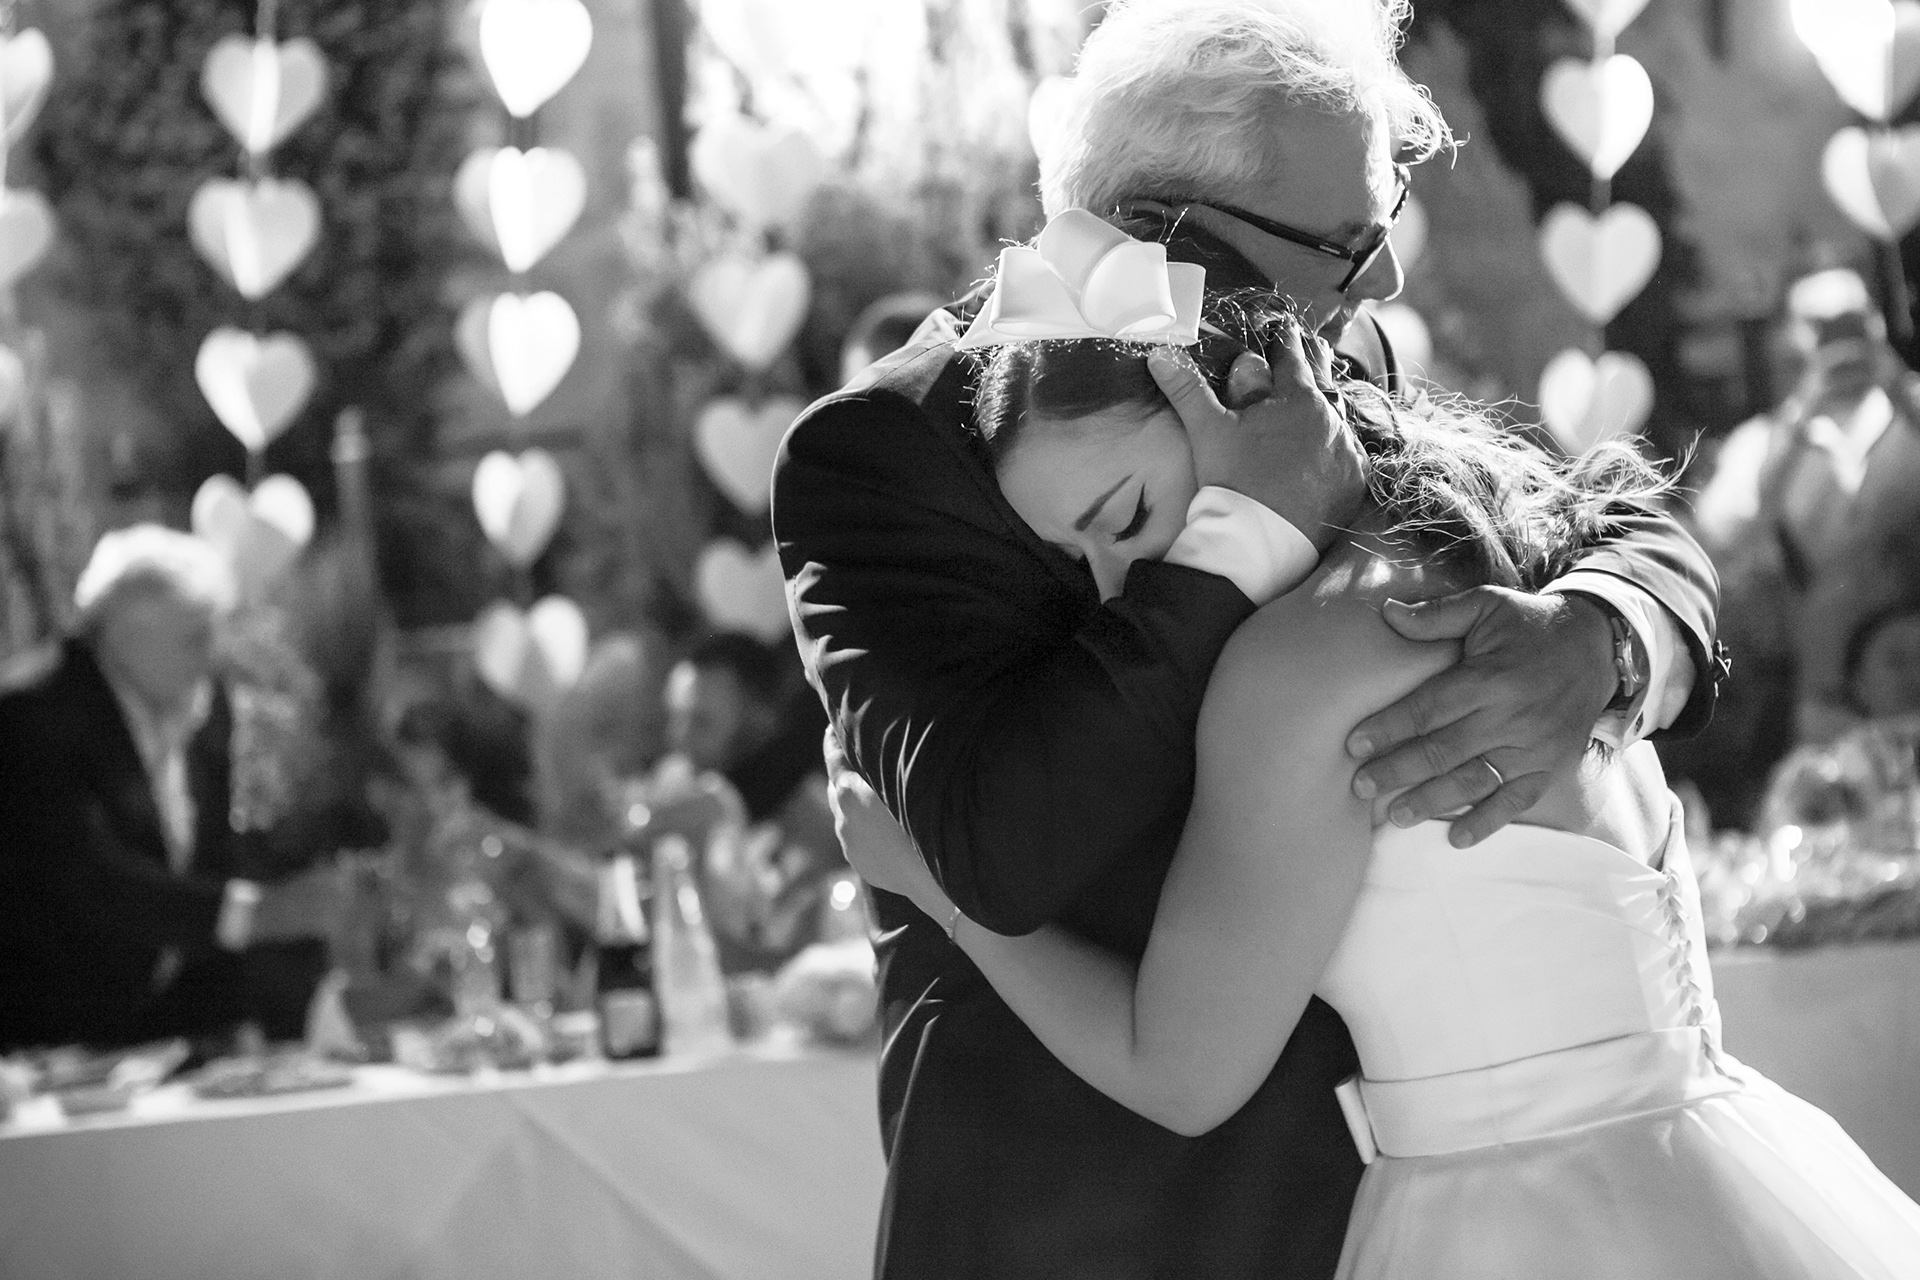 Wedding Photography of Father Daughter - Getting emotional during dance